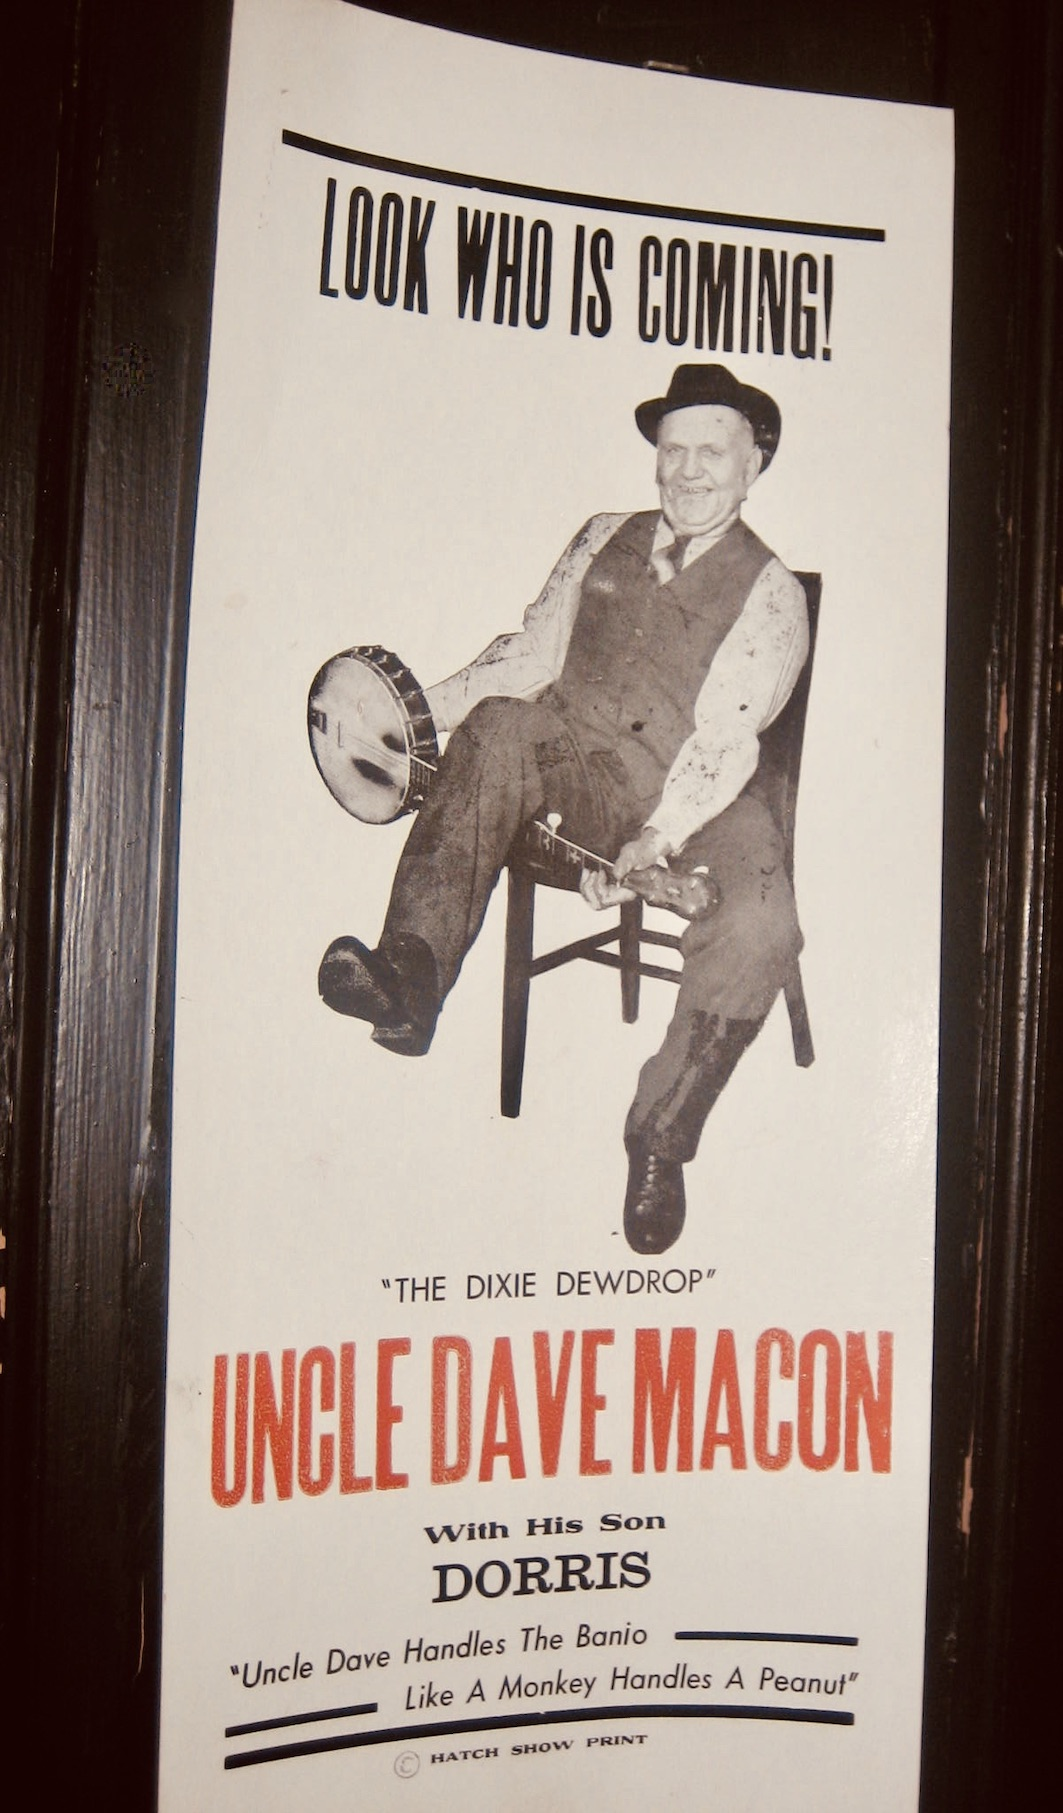 Uncle Dave Macon The Dixie Dewdrop